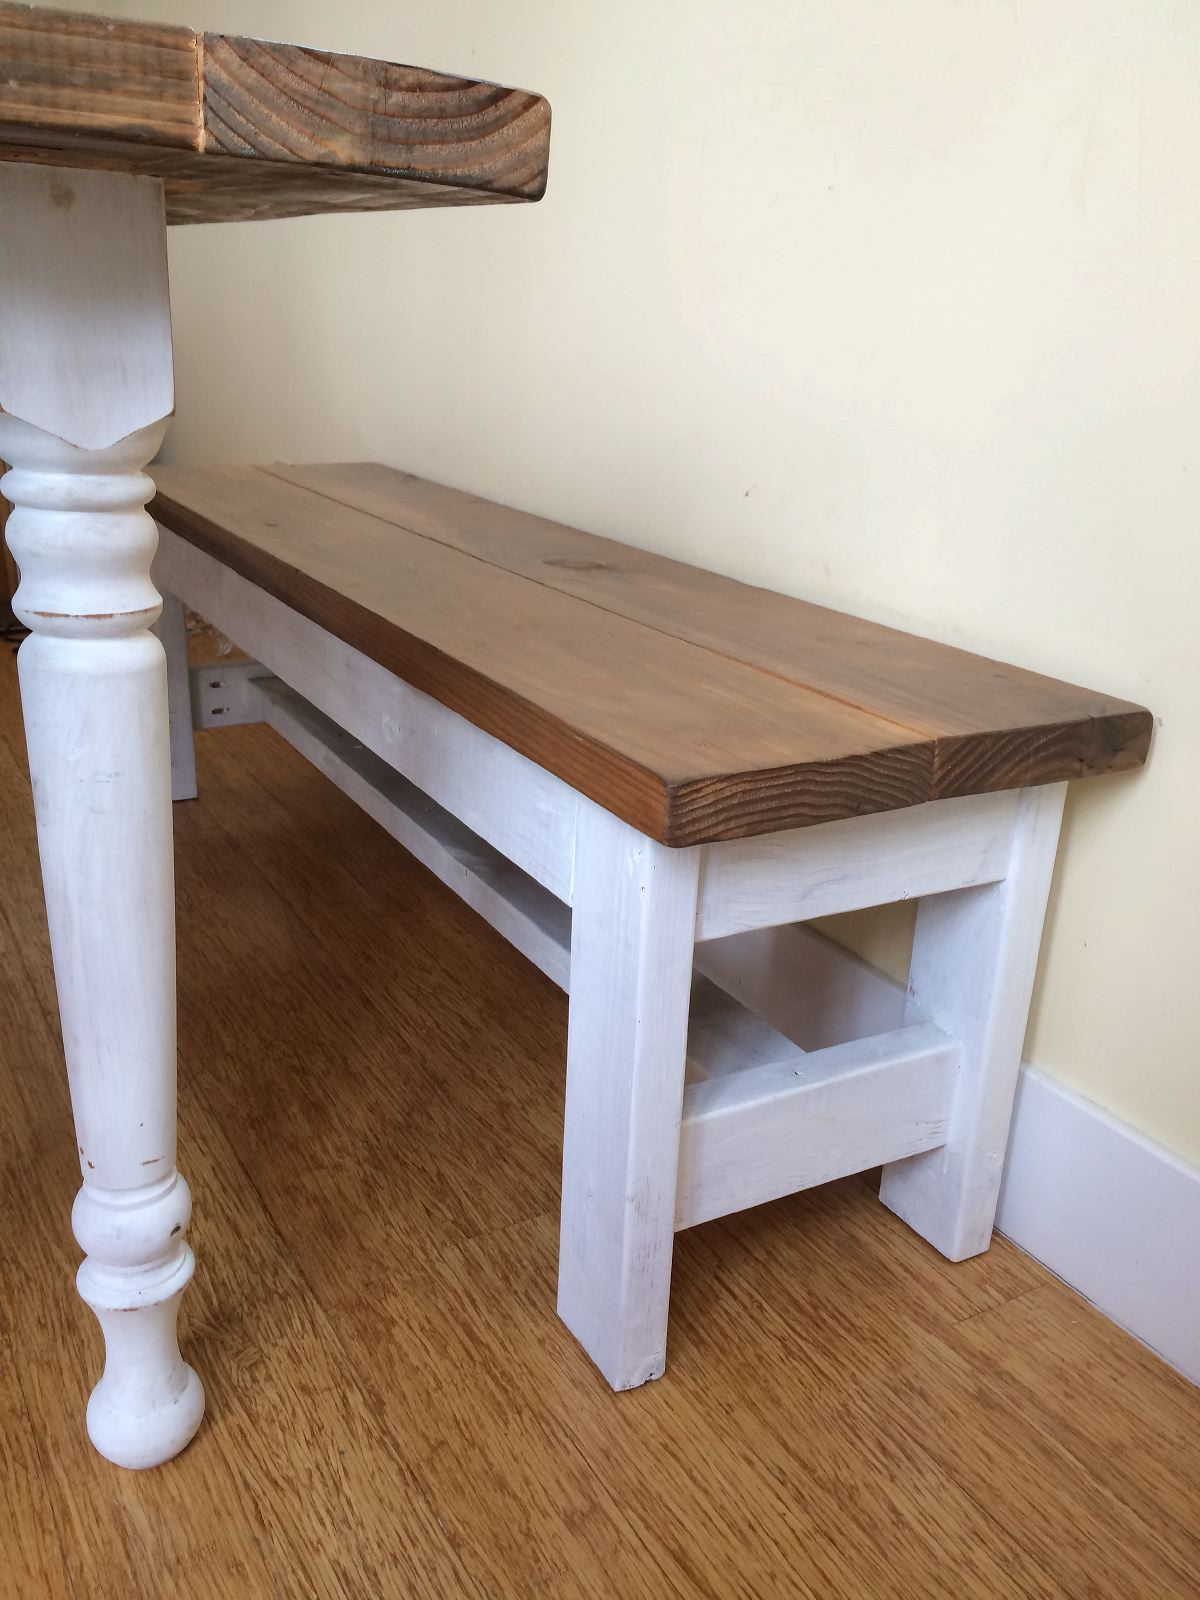 Diy building a farmhouse table and bench shirley Diy farmhouse table